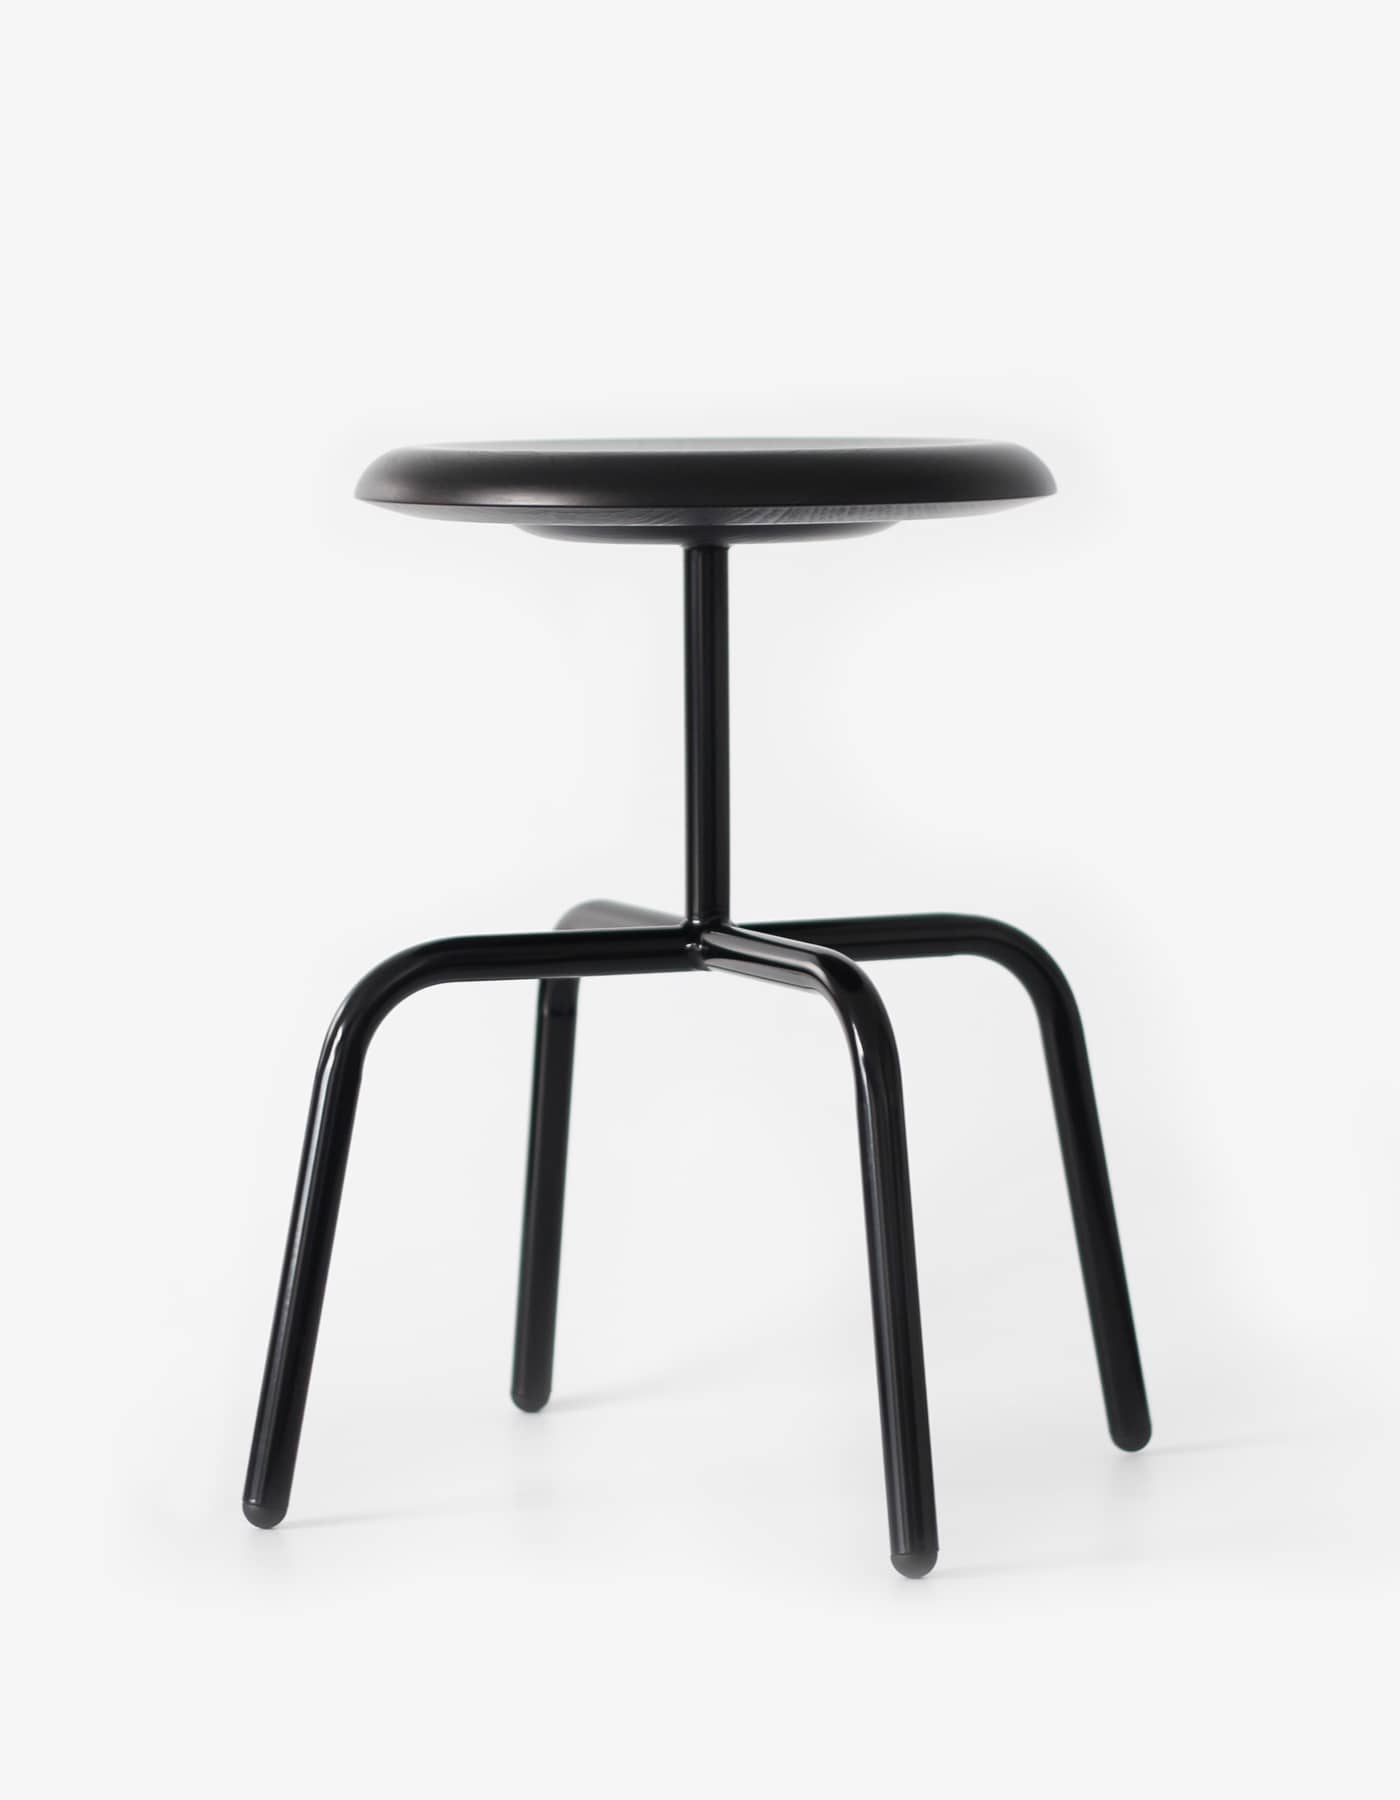 ATELIERHAUSSMANN_HERRENBERGER_HOCKER_STOOL_barhocker- design berlin_made in Germany_gastronomie hocker